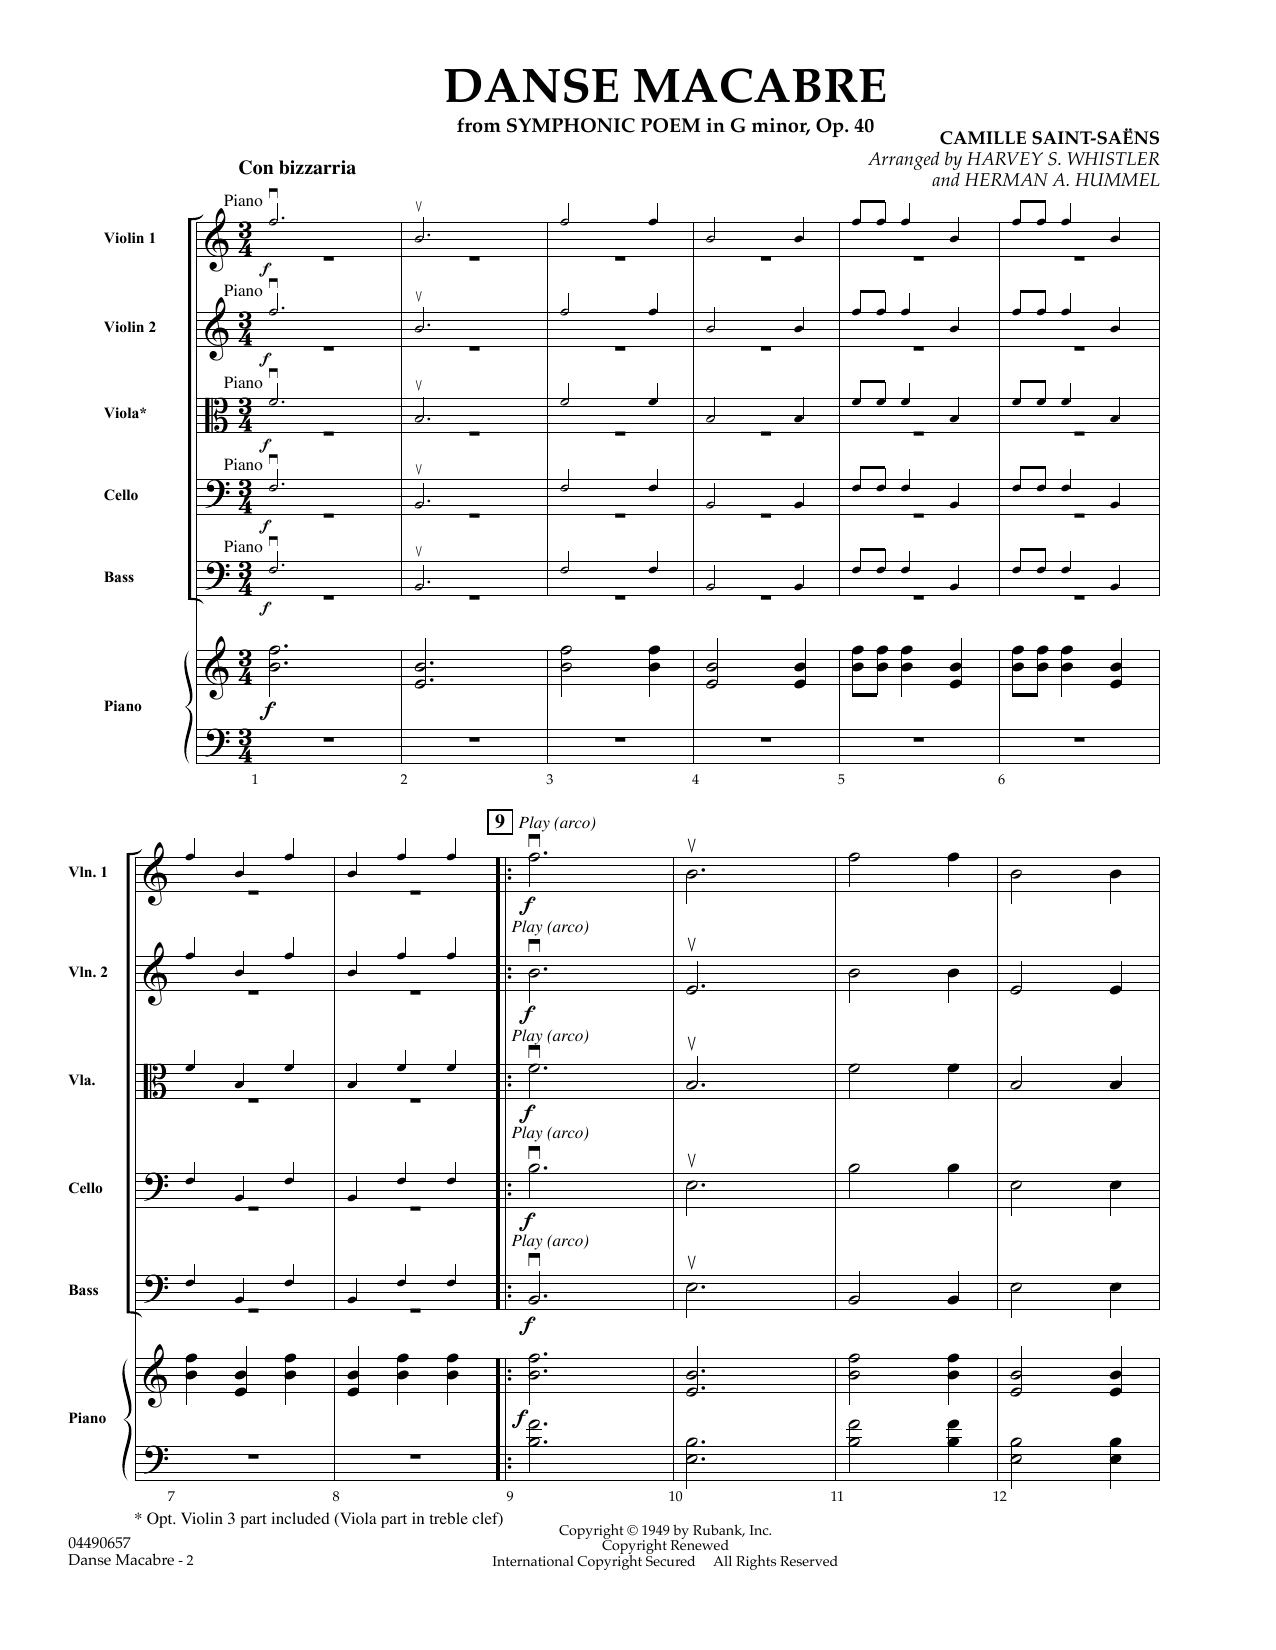 Danse Macabre (COMPLETE) sheet music for orchestra by Herman Hummel, Camille Saint-Saens and Harvey S. Whistler. Score Image Preview.